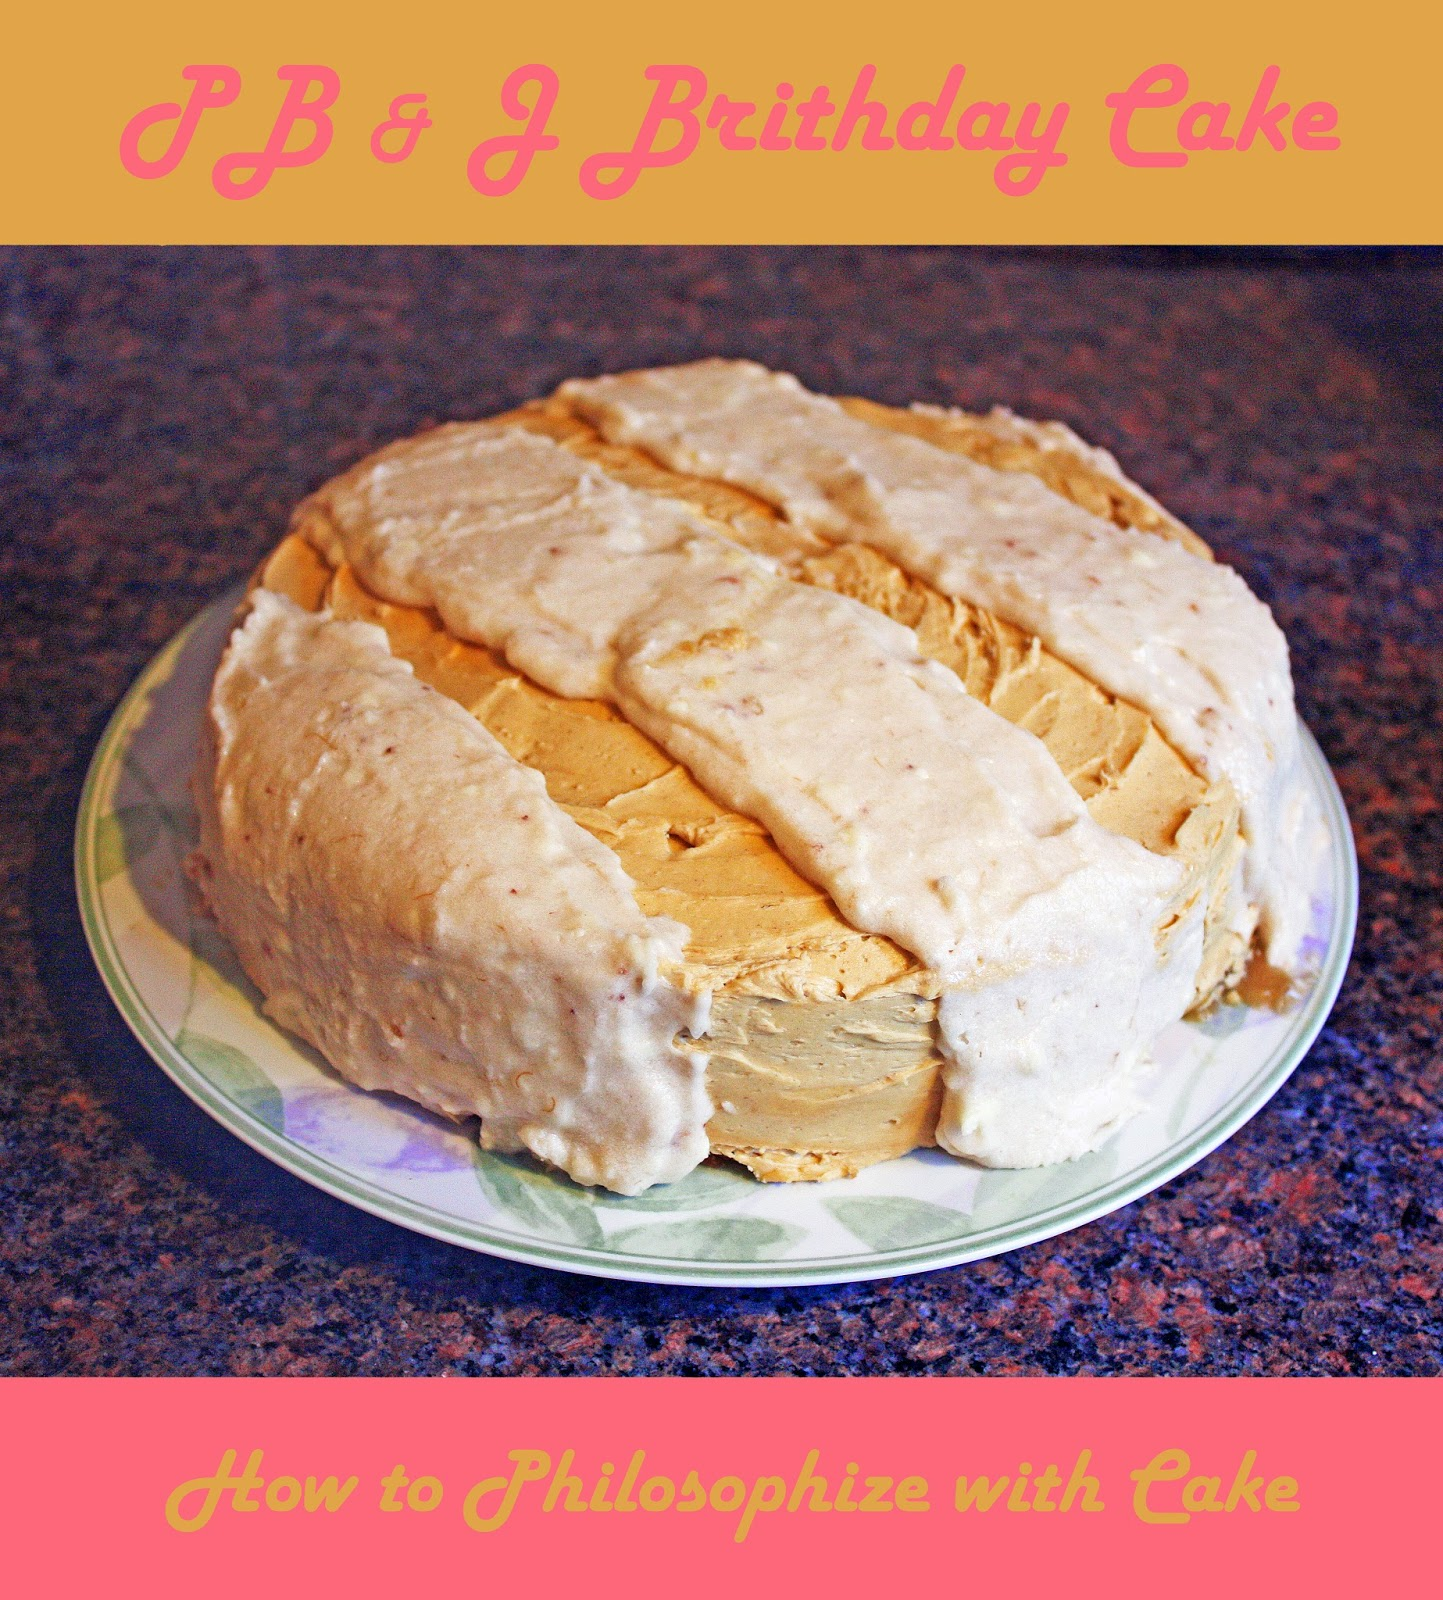 peanut butter and jelly birthday cake how to philosophize with cake